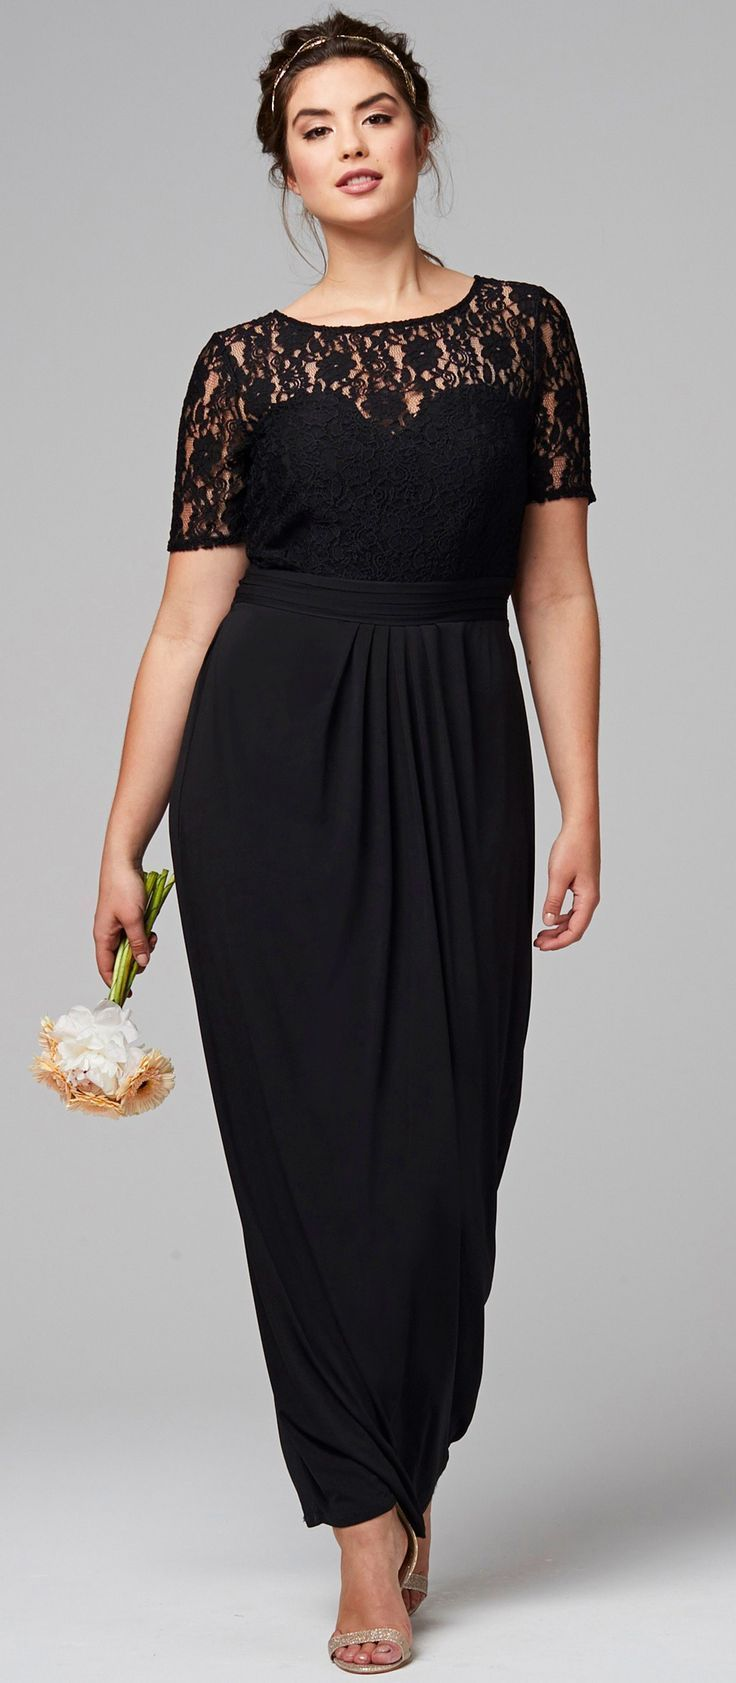 edbf5bbb9c3b9 45 Plus Size Wedding Guest Dresses  with Sleeves  - Plus Size Cocktail  Dresses - alexawebb.com